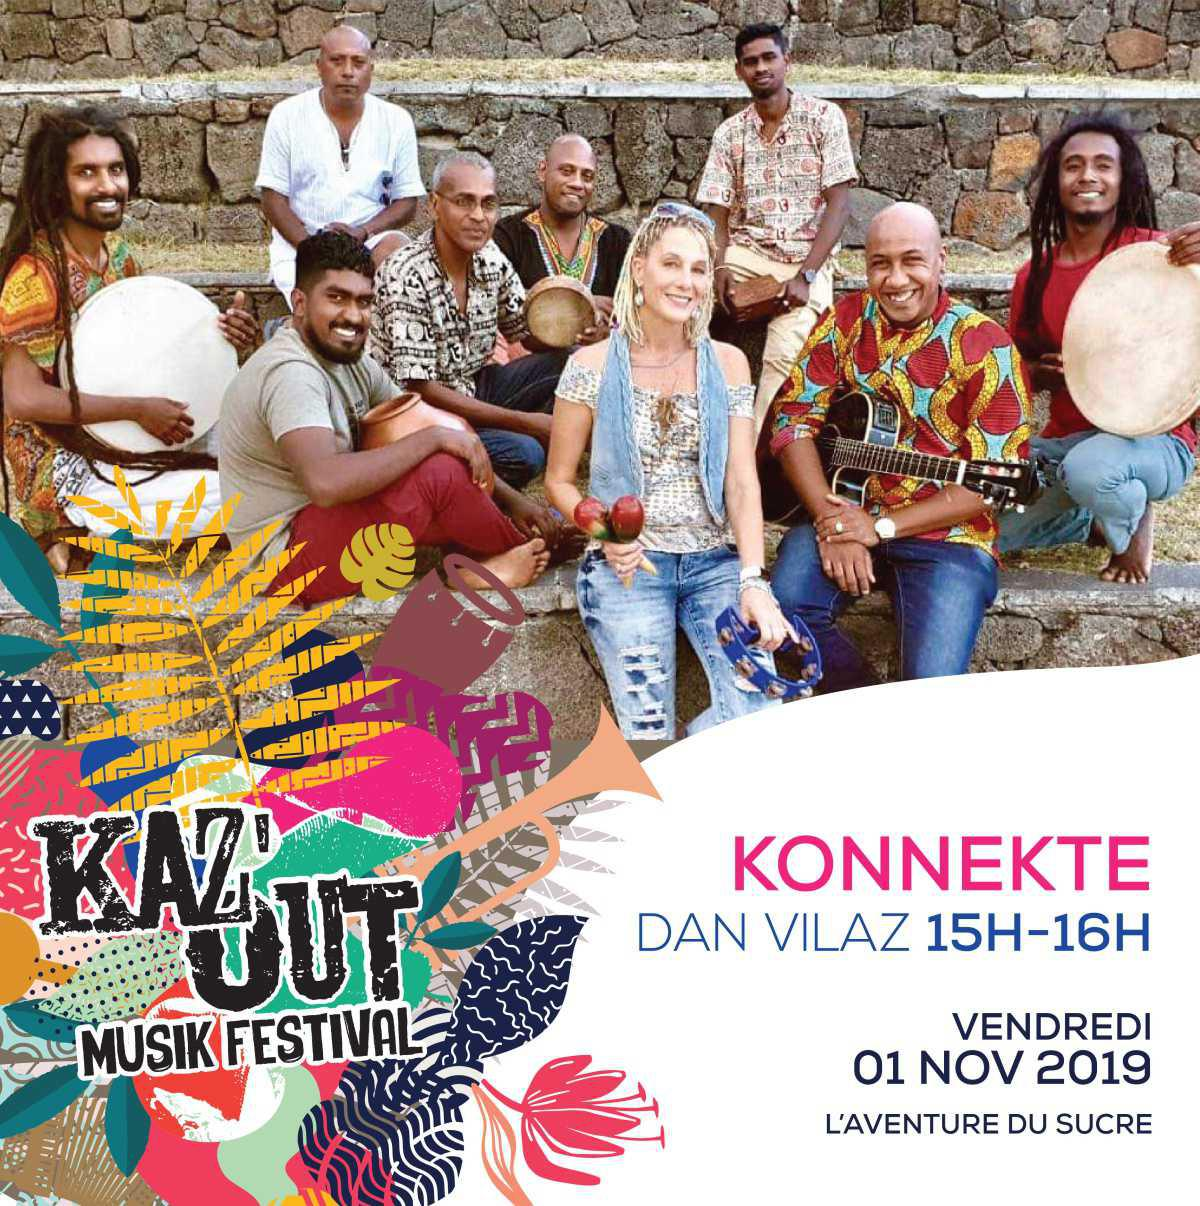 Feel the beat with Konnekte!